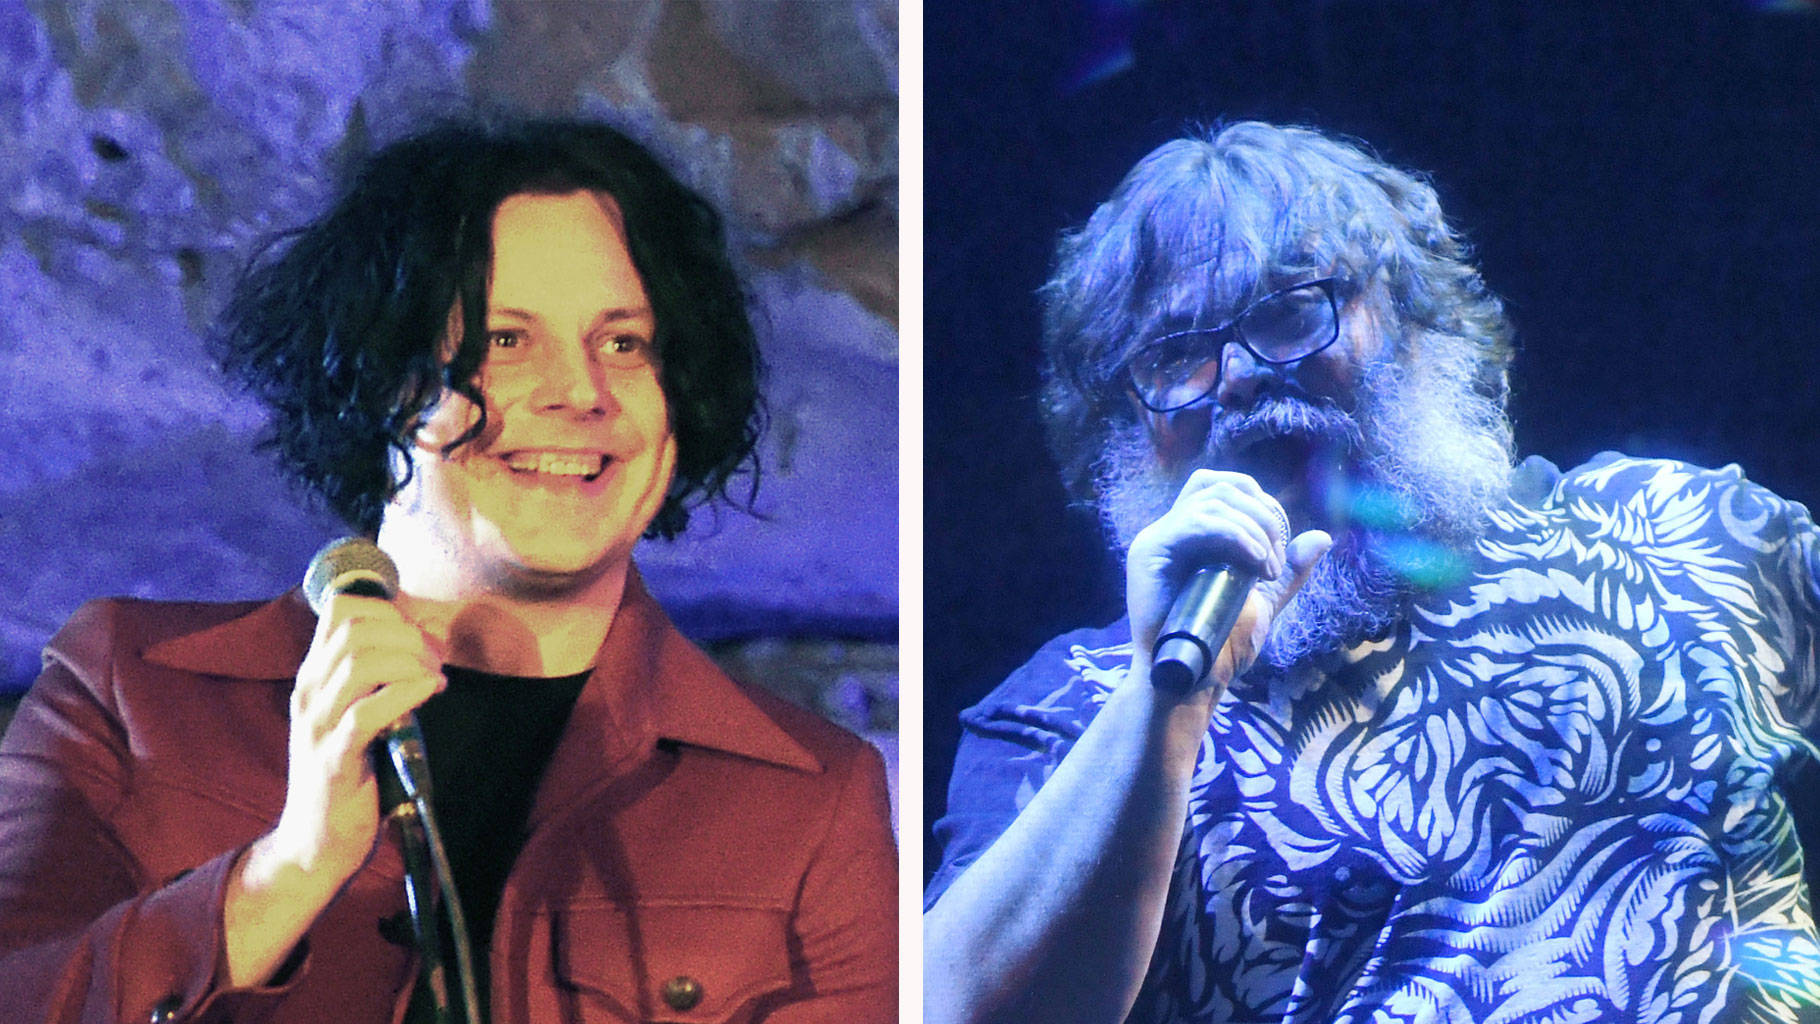 Jack White and Jack Black have finally made music together